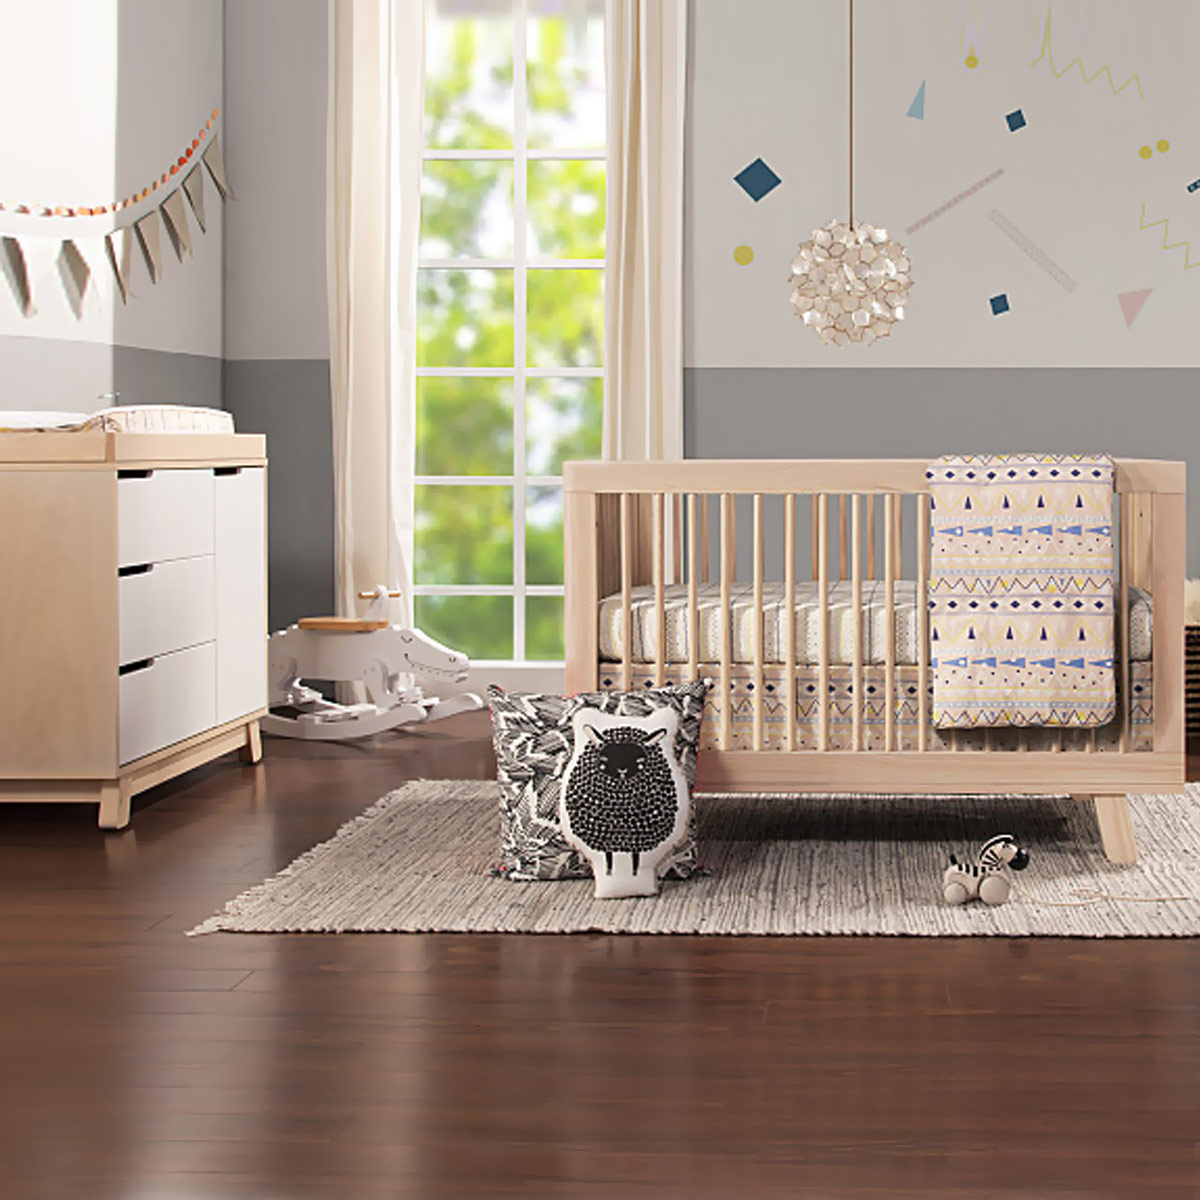 Babyletto hudson 2 piece nursery set 3 in 1 convertible crib and changer dresser in washed natural free shipping